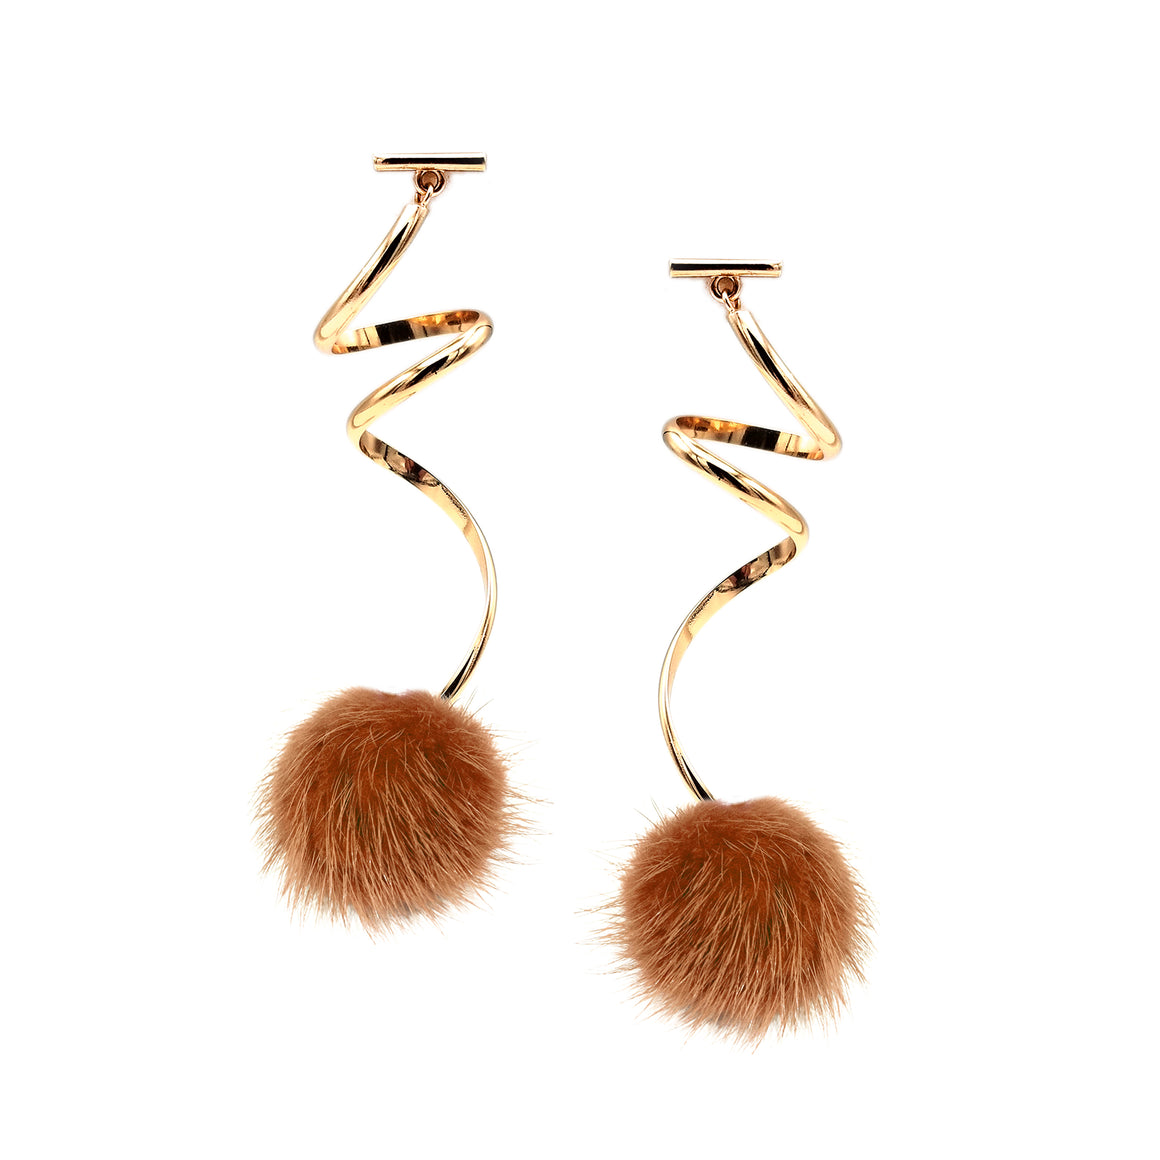 RUST MINI MINK SPIRAL POM POM EARRINGS, Earrings, Tuleste, Tuleste